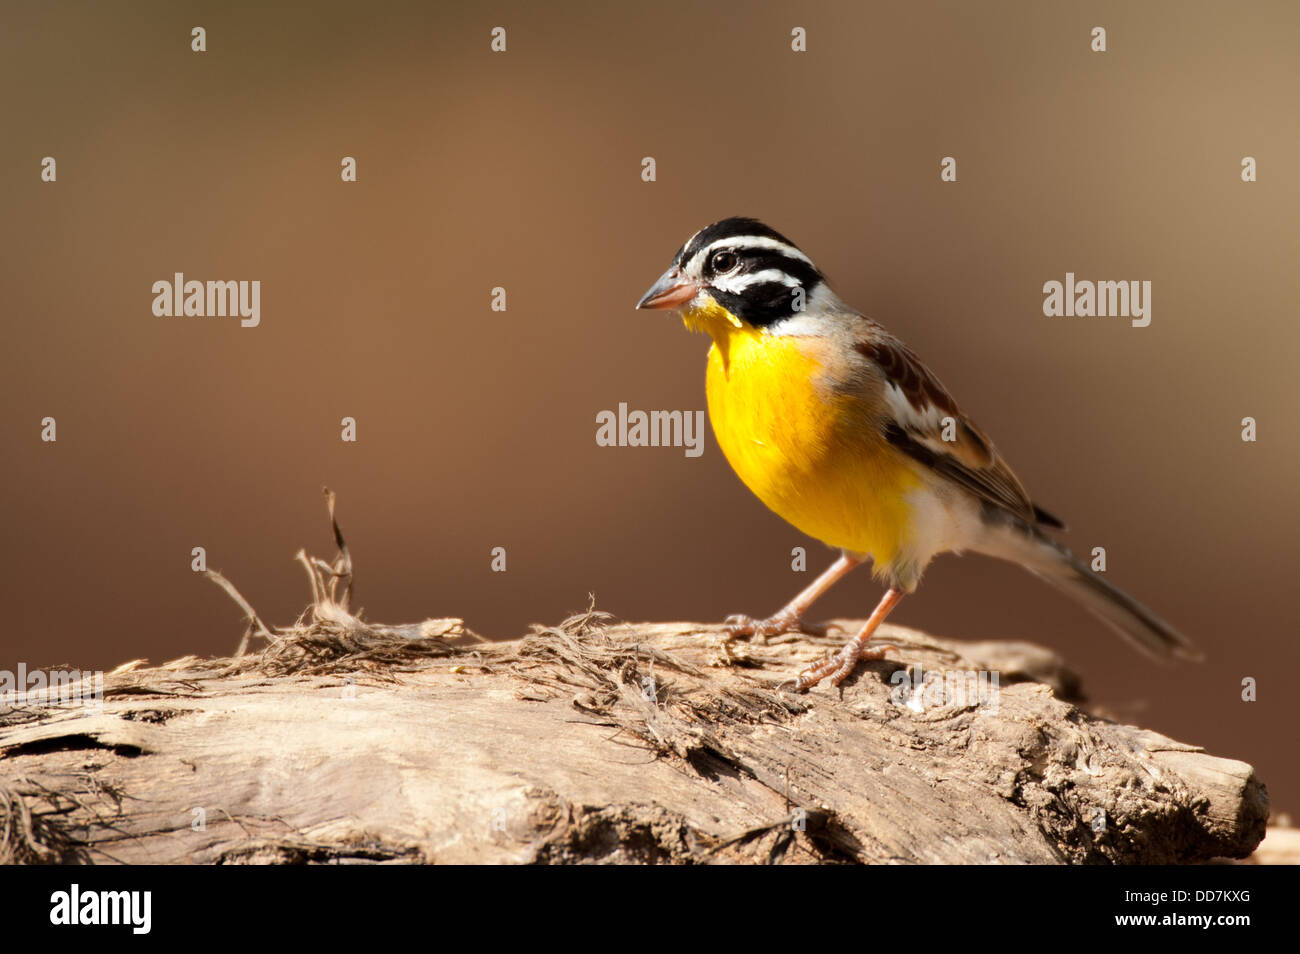 Golden-breasted bunting, Emberiza flaviventris, Mkhuze Game Reserve, iSimangaliso Wetland Park, South Africa - Stock Image